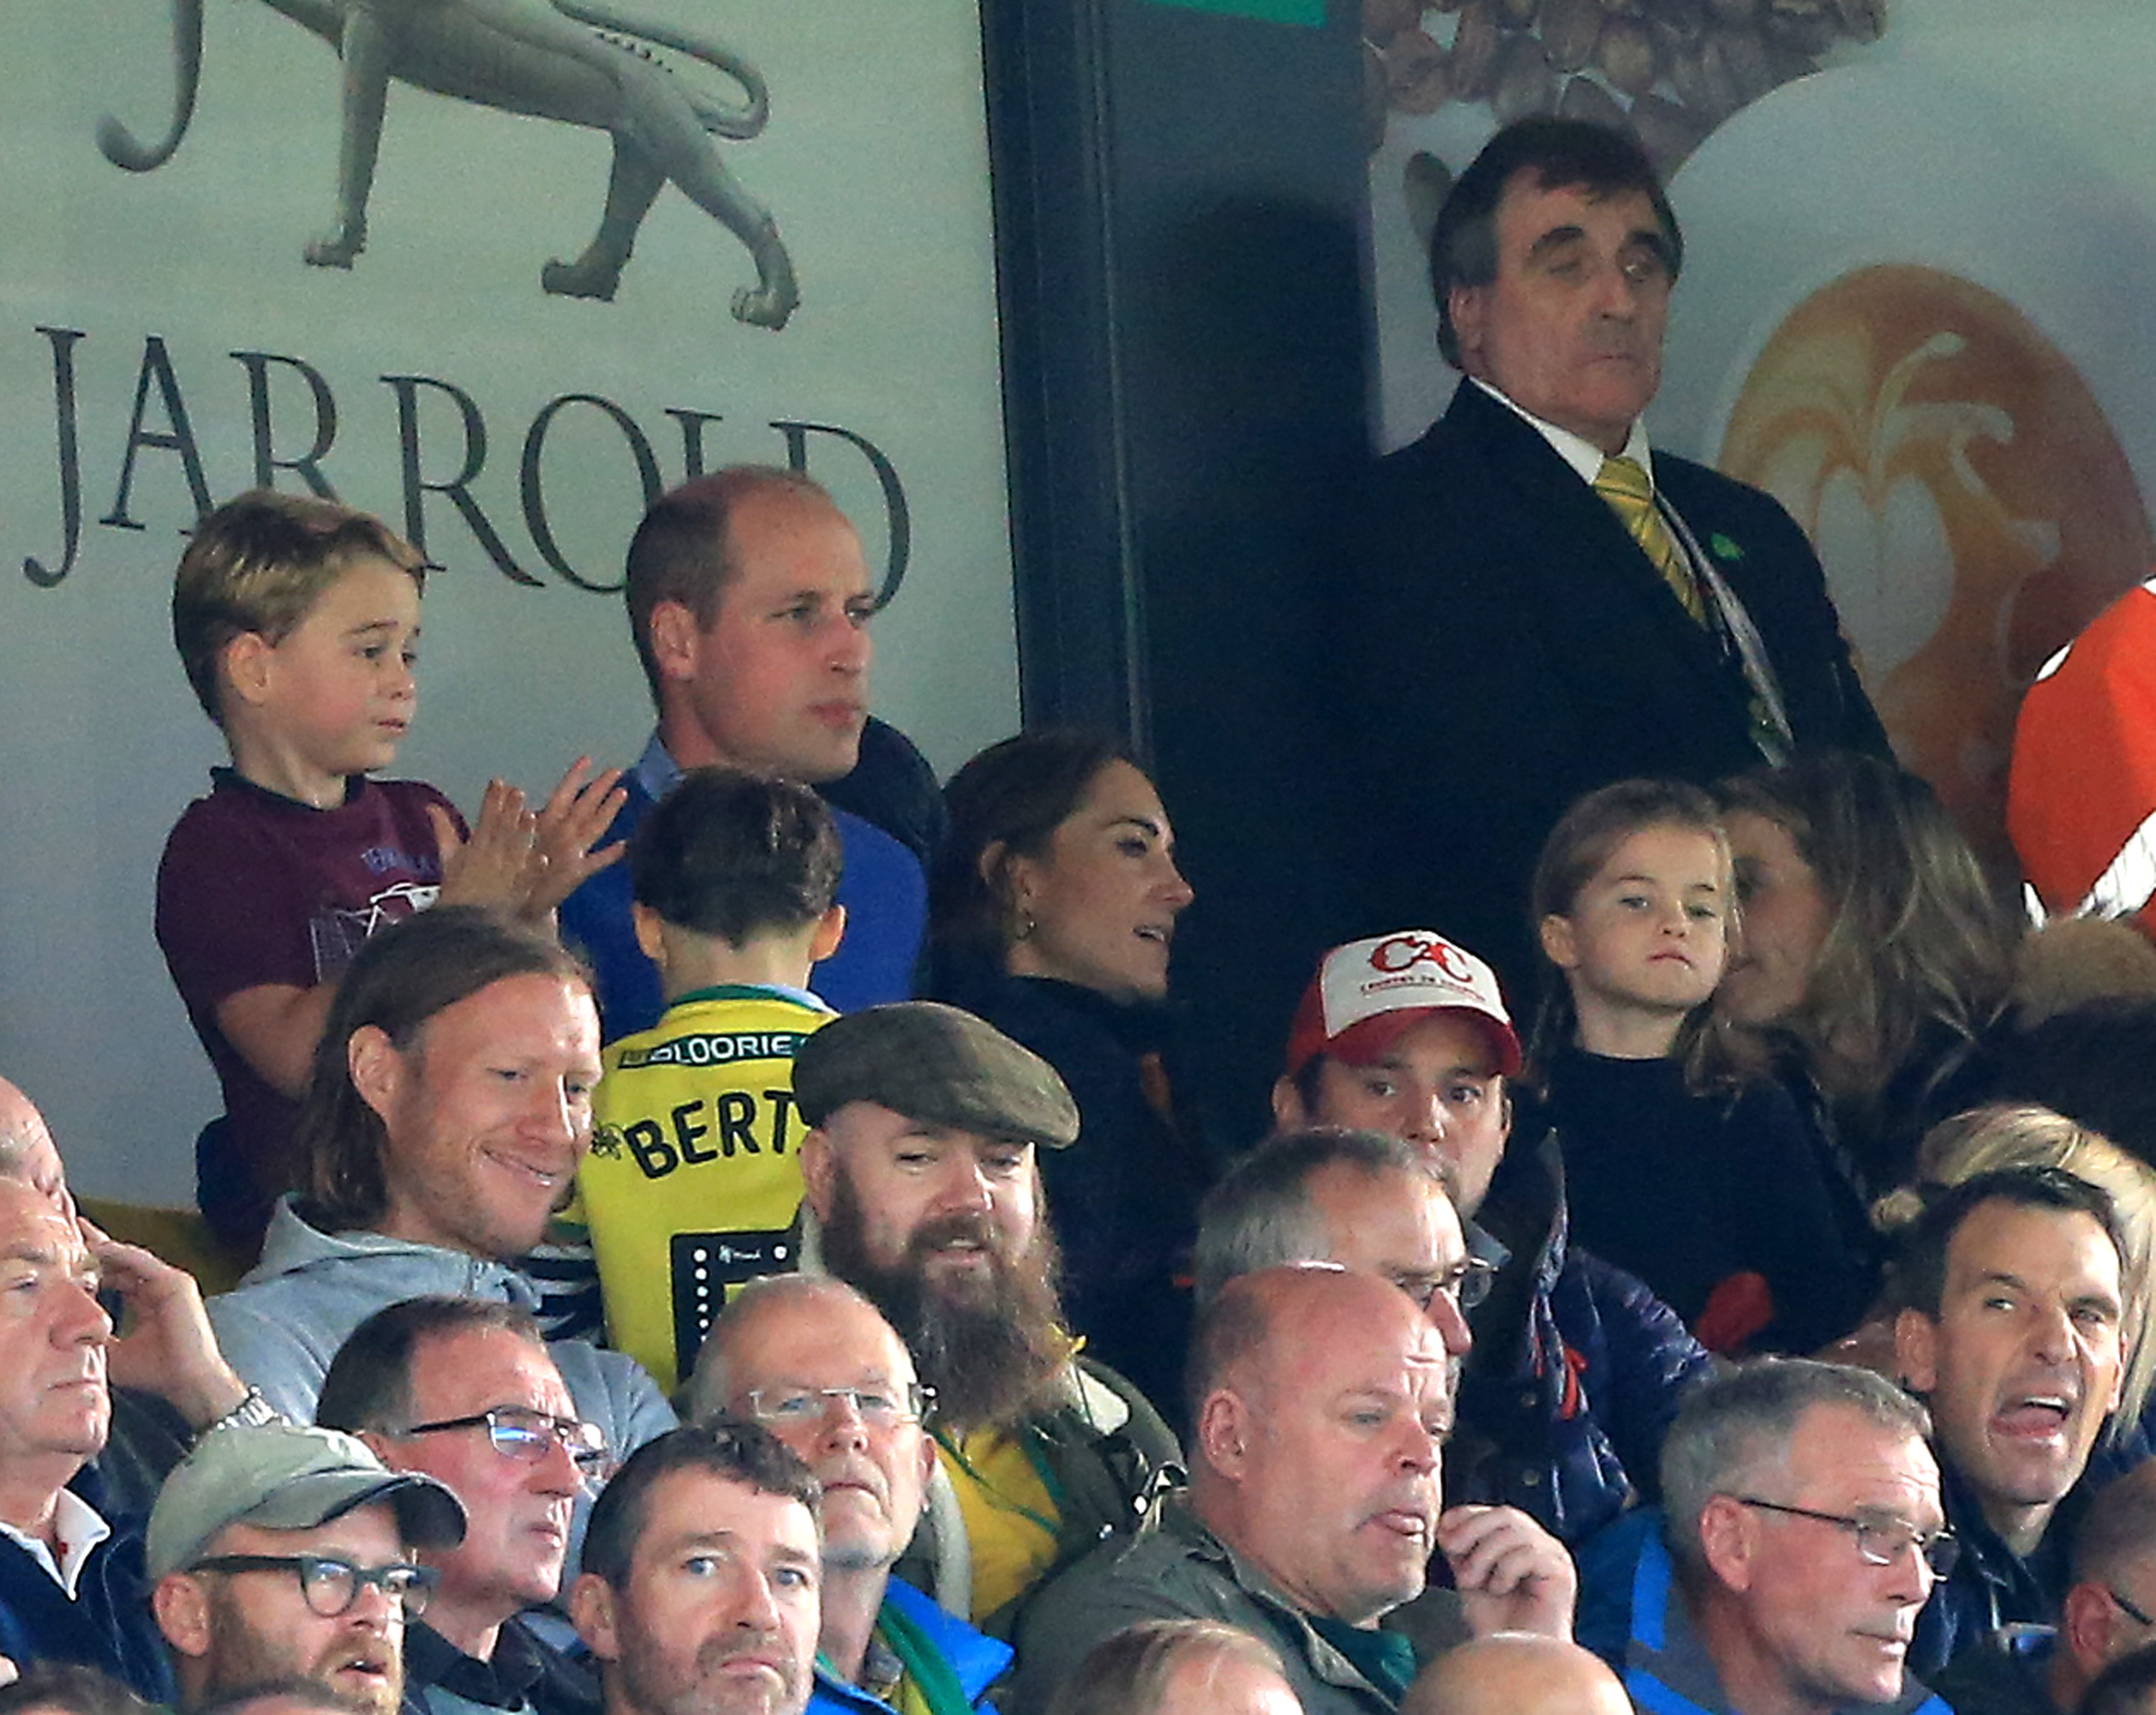 NORWICH, ENGLAND - OCTOBER 05: Prince George of Cambridge,  Prince William, Duke of Cambridge and Catherine, Duchess of Cambridge and Princess Charlotte of Cambridge are seen in the stands during the Premier League match between Norwich City and Aston Villa at Carrow Road on October 05, 2019 in Norwich, United Kingdom. (Photo by Stephen Pond/Getty Images)